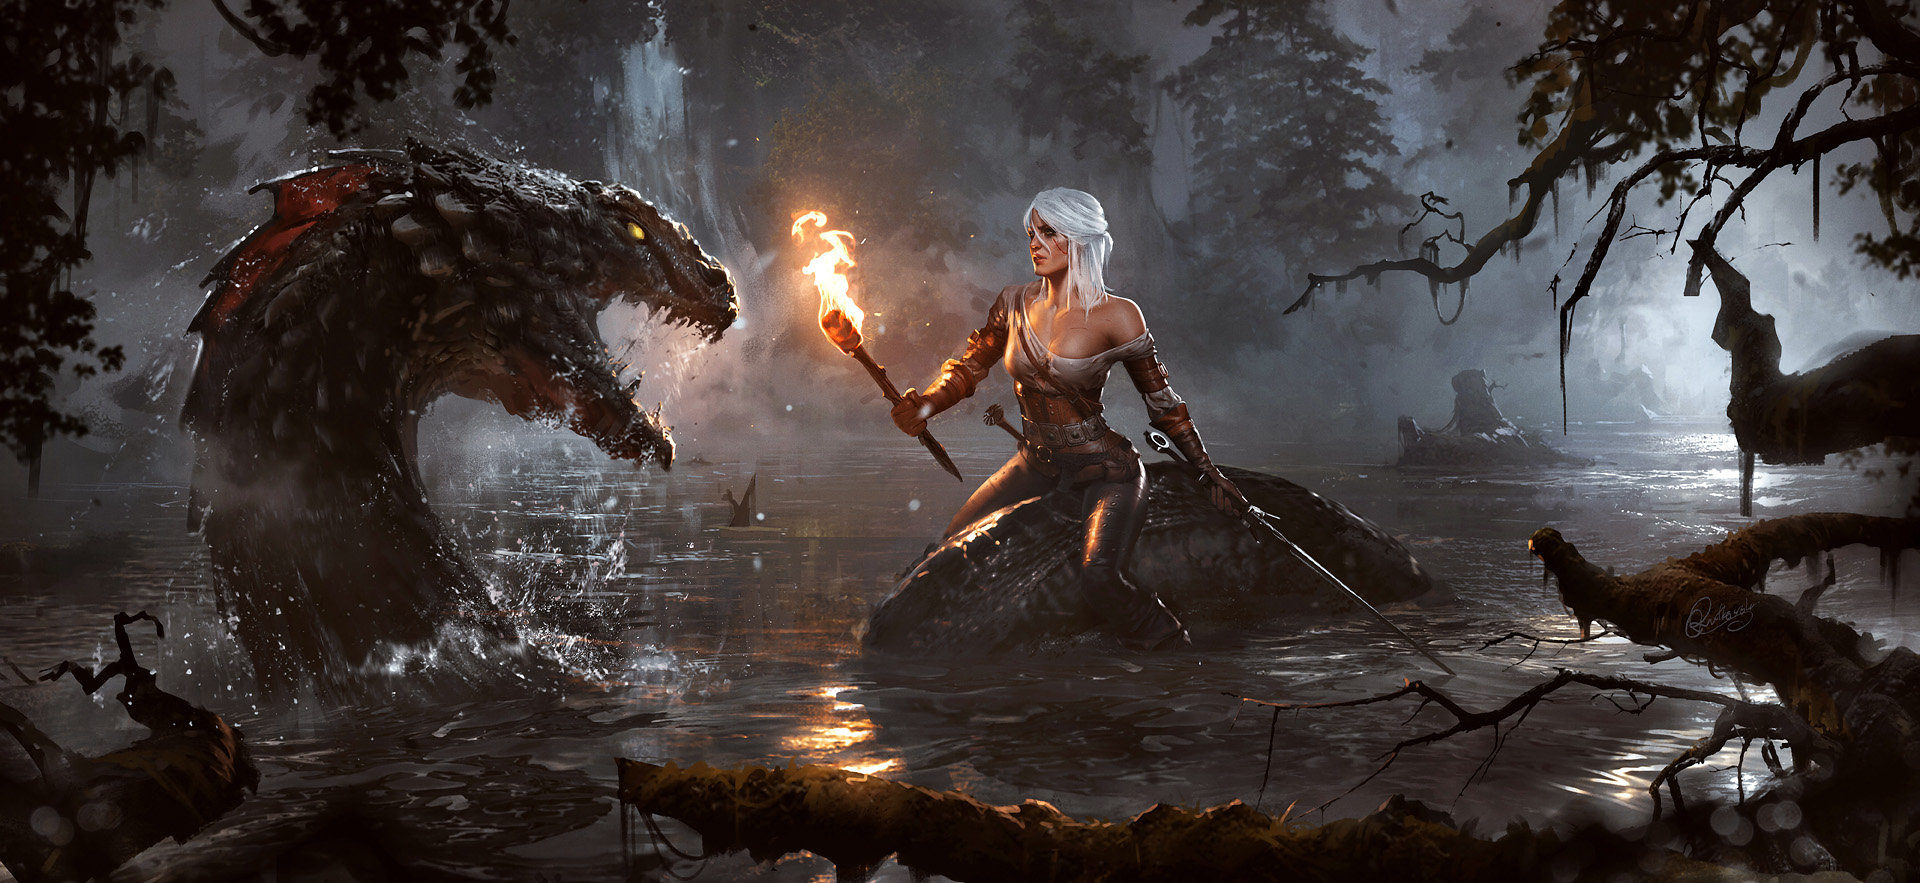 Grzegorz Rutkowski Digital Painting Illustration The Witcher III Through The Marshes